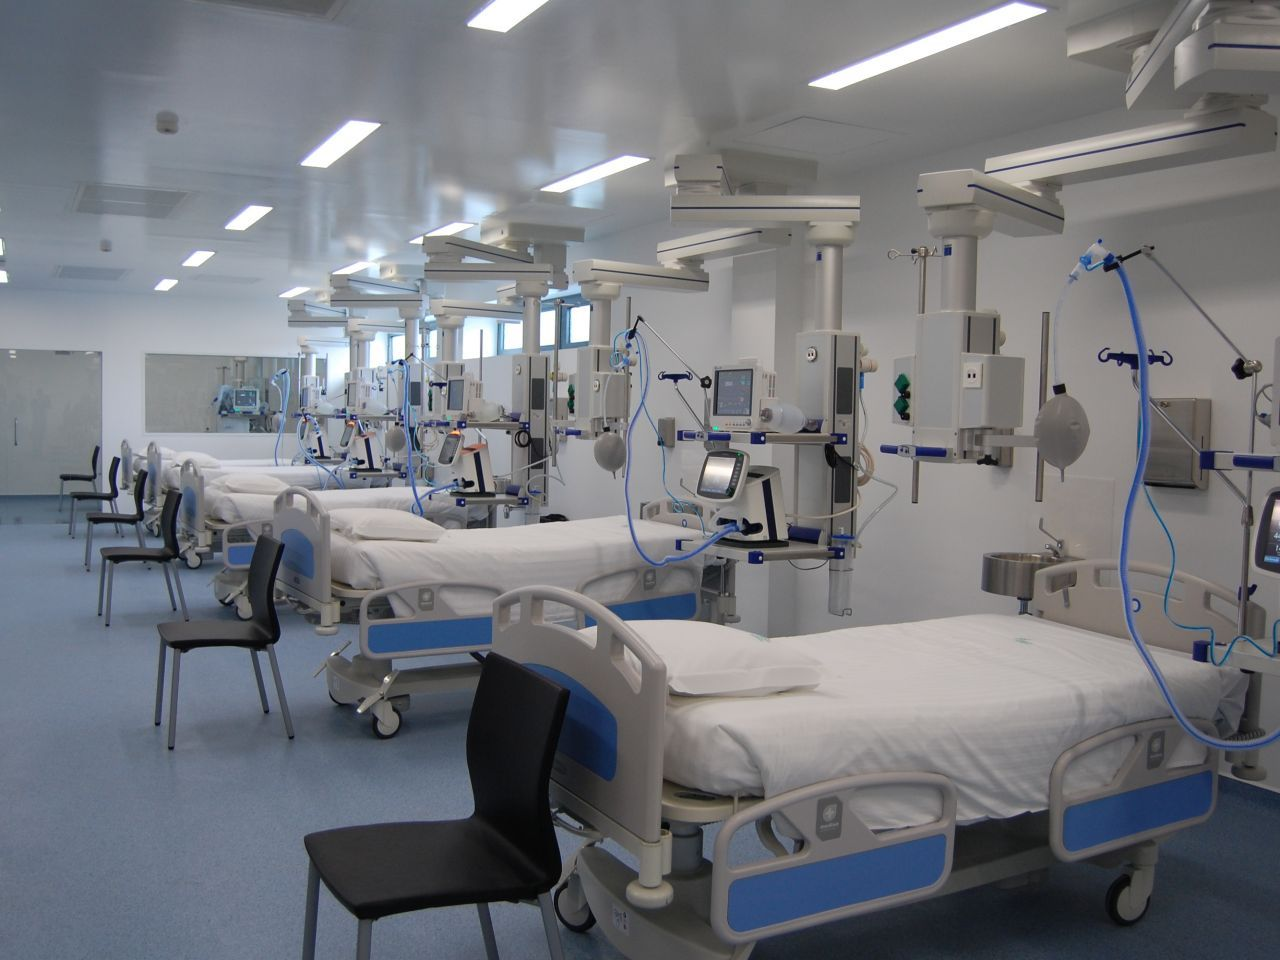 Covid-19 hospital beds at 80% occupancy - The Portugal News